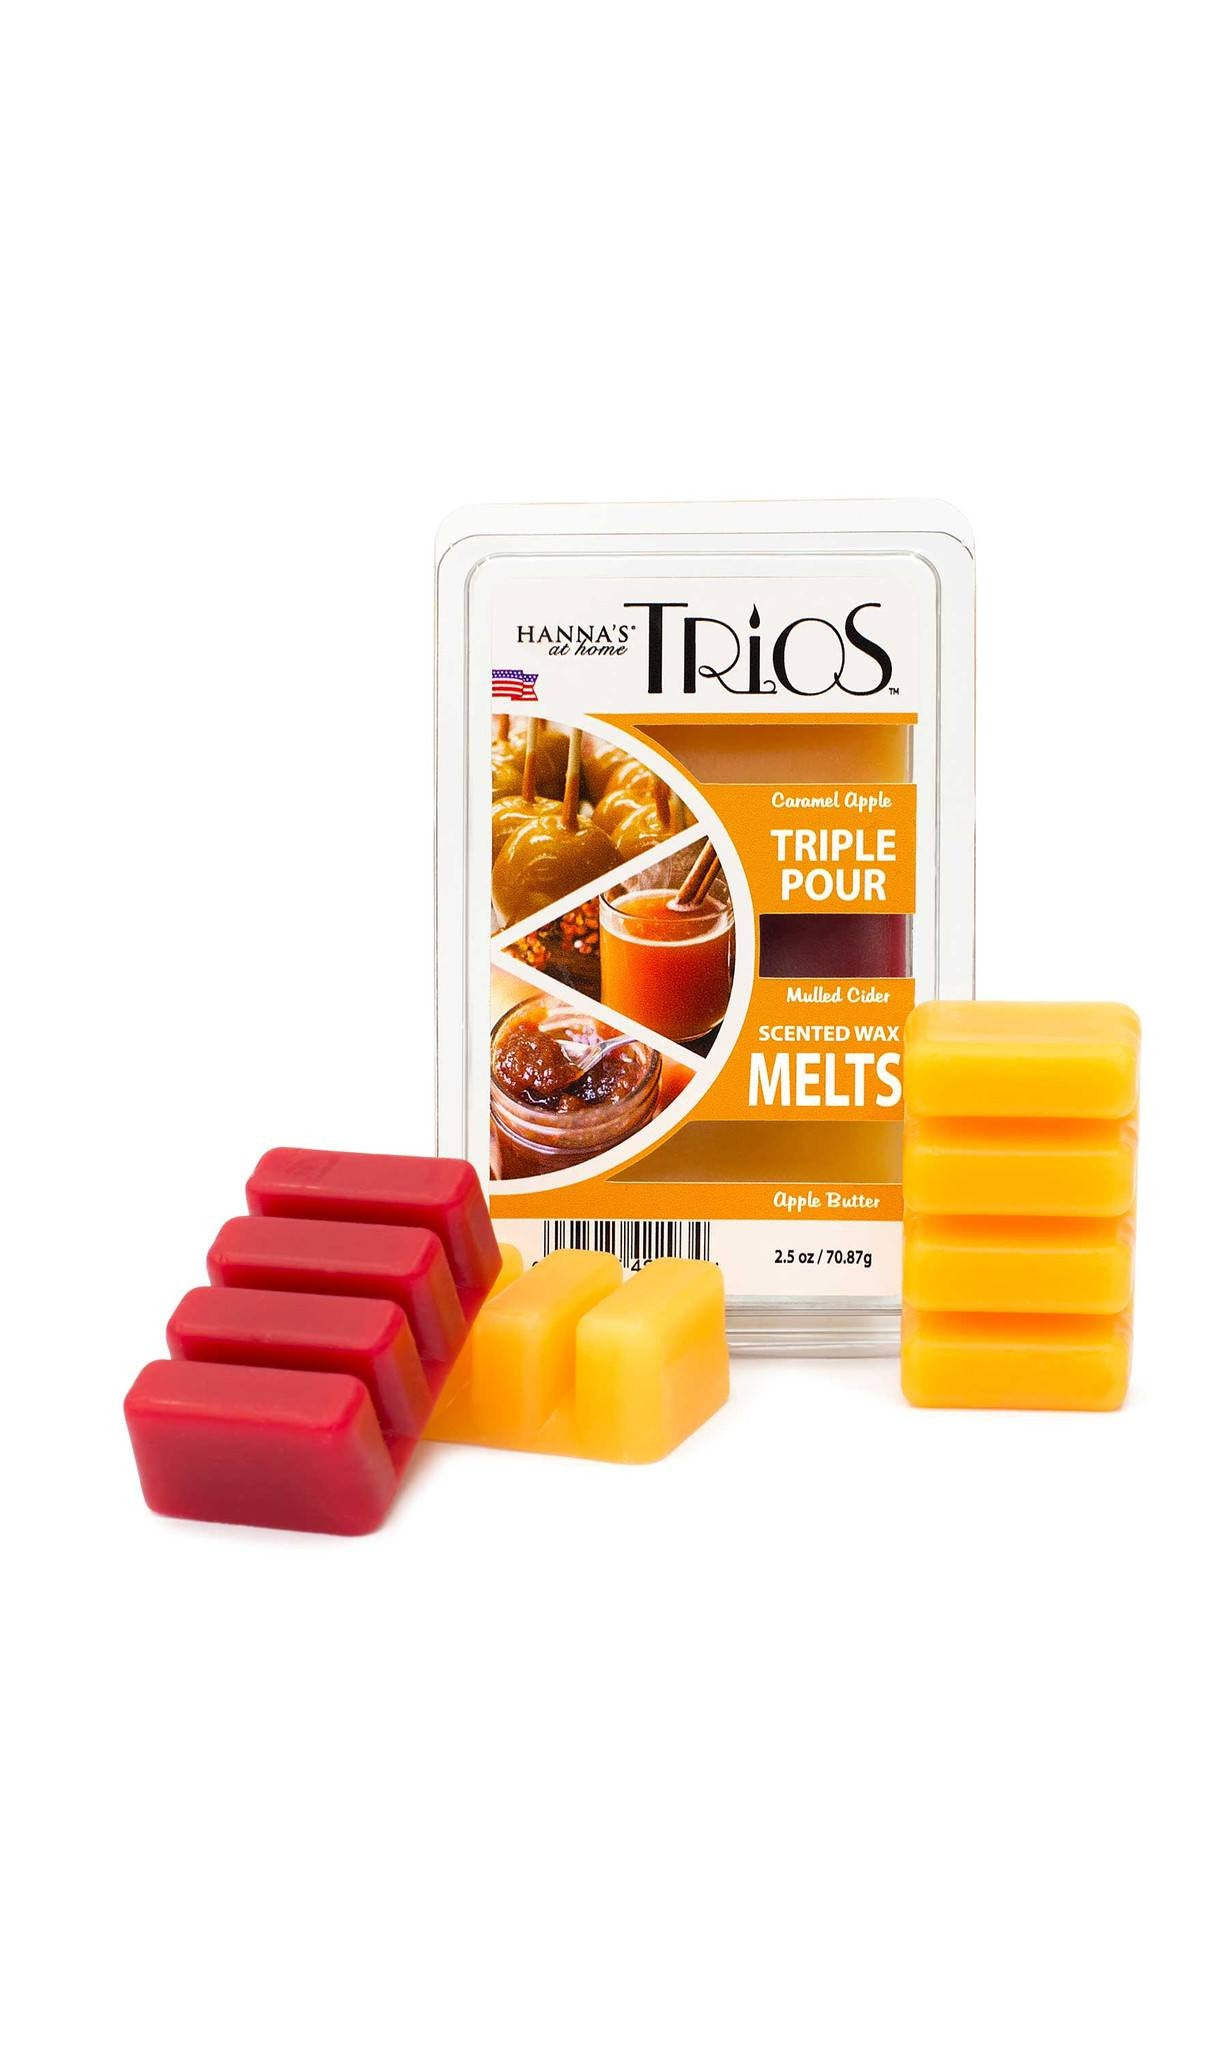 Candlemart.com Fall Trios Mulled Cider Scented Wax Melts Melts $ 2.49